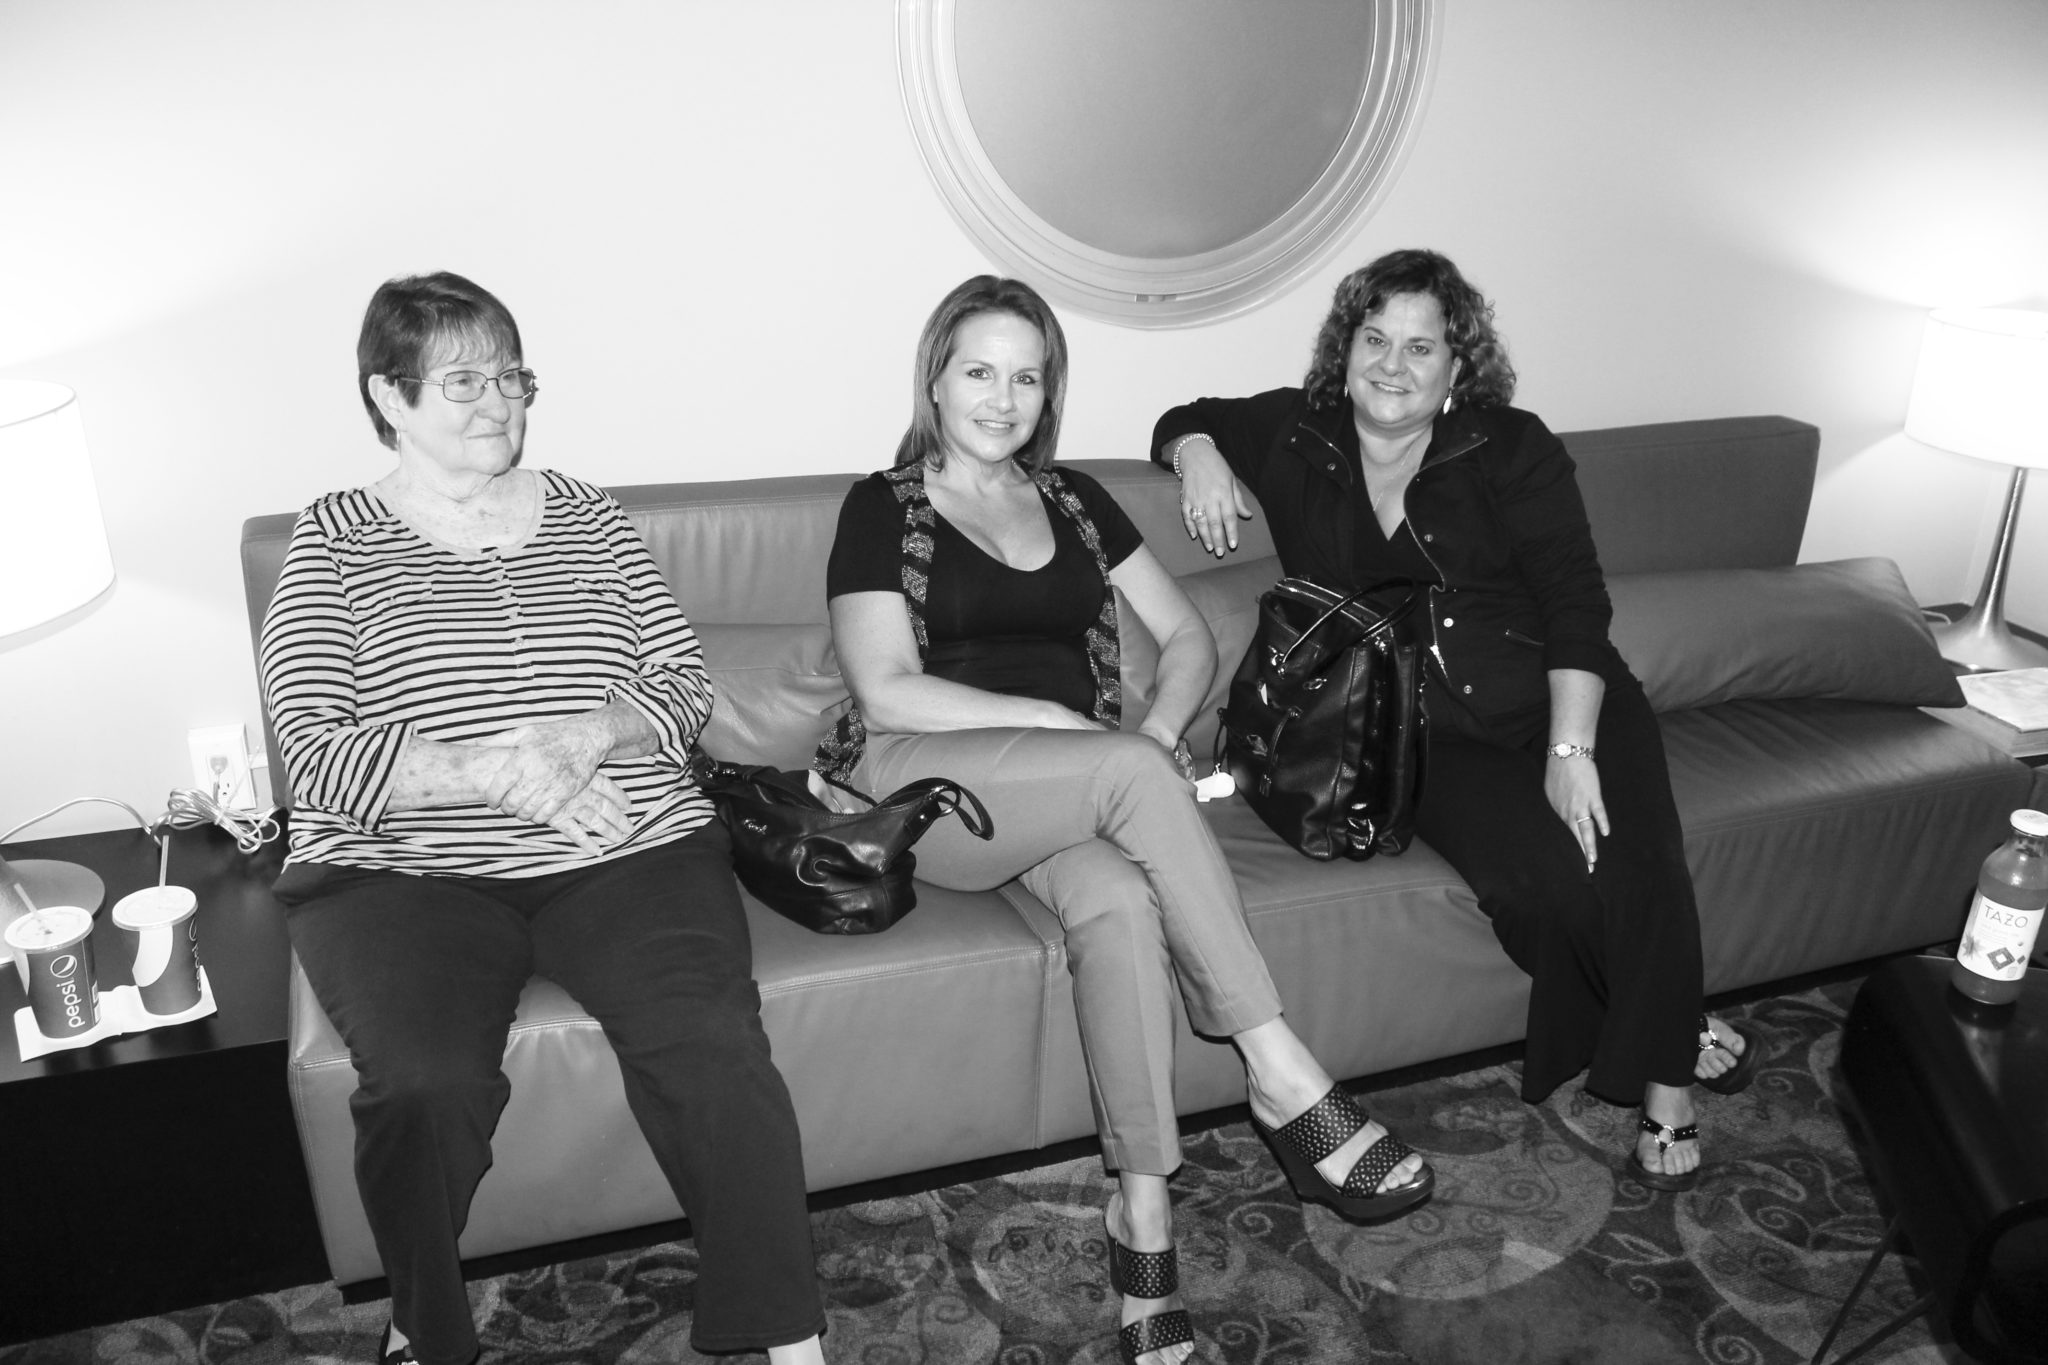 Sandra Wolcott, Andrea Marchan and Dawn Plowman wait for the show to start.